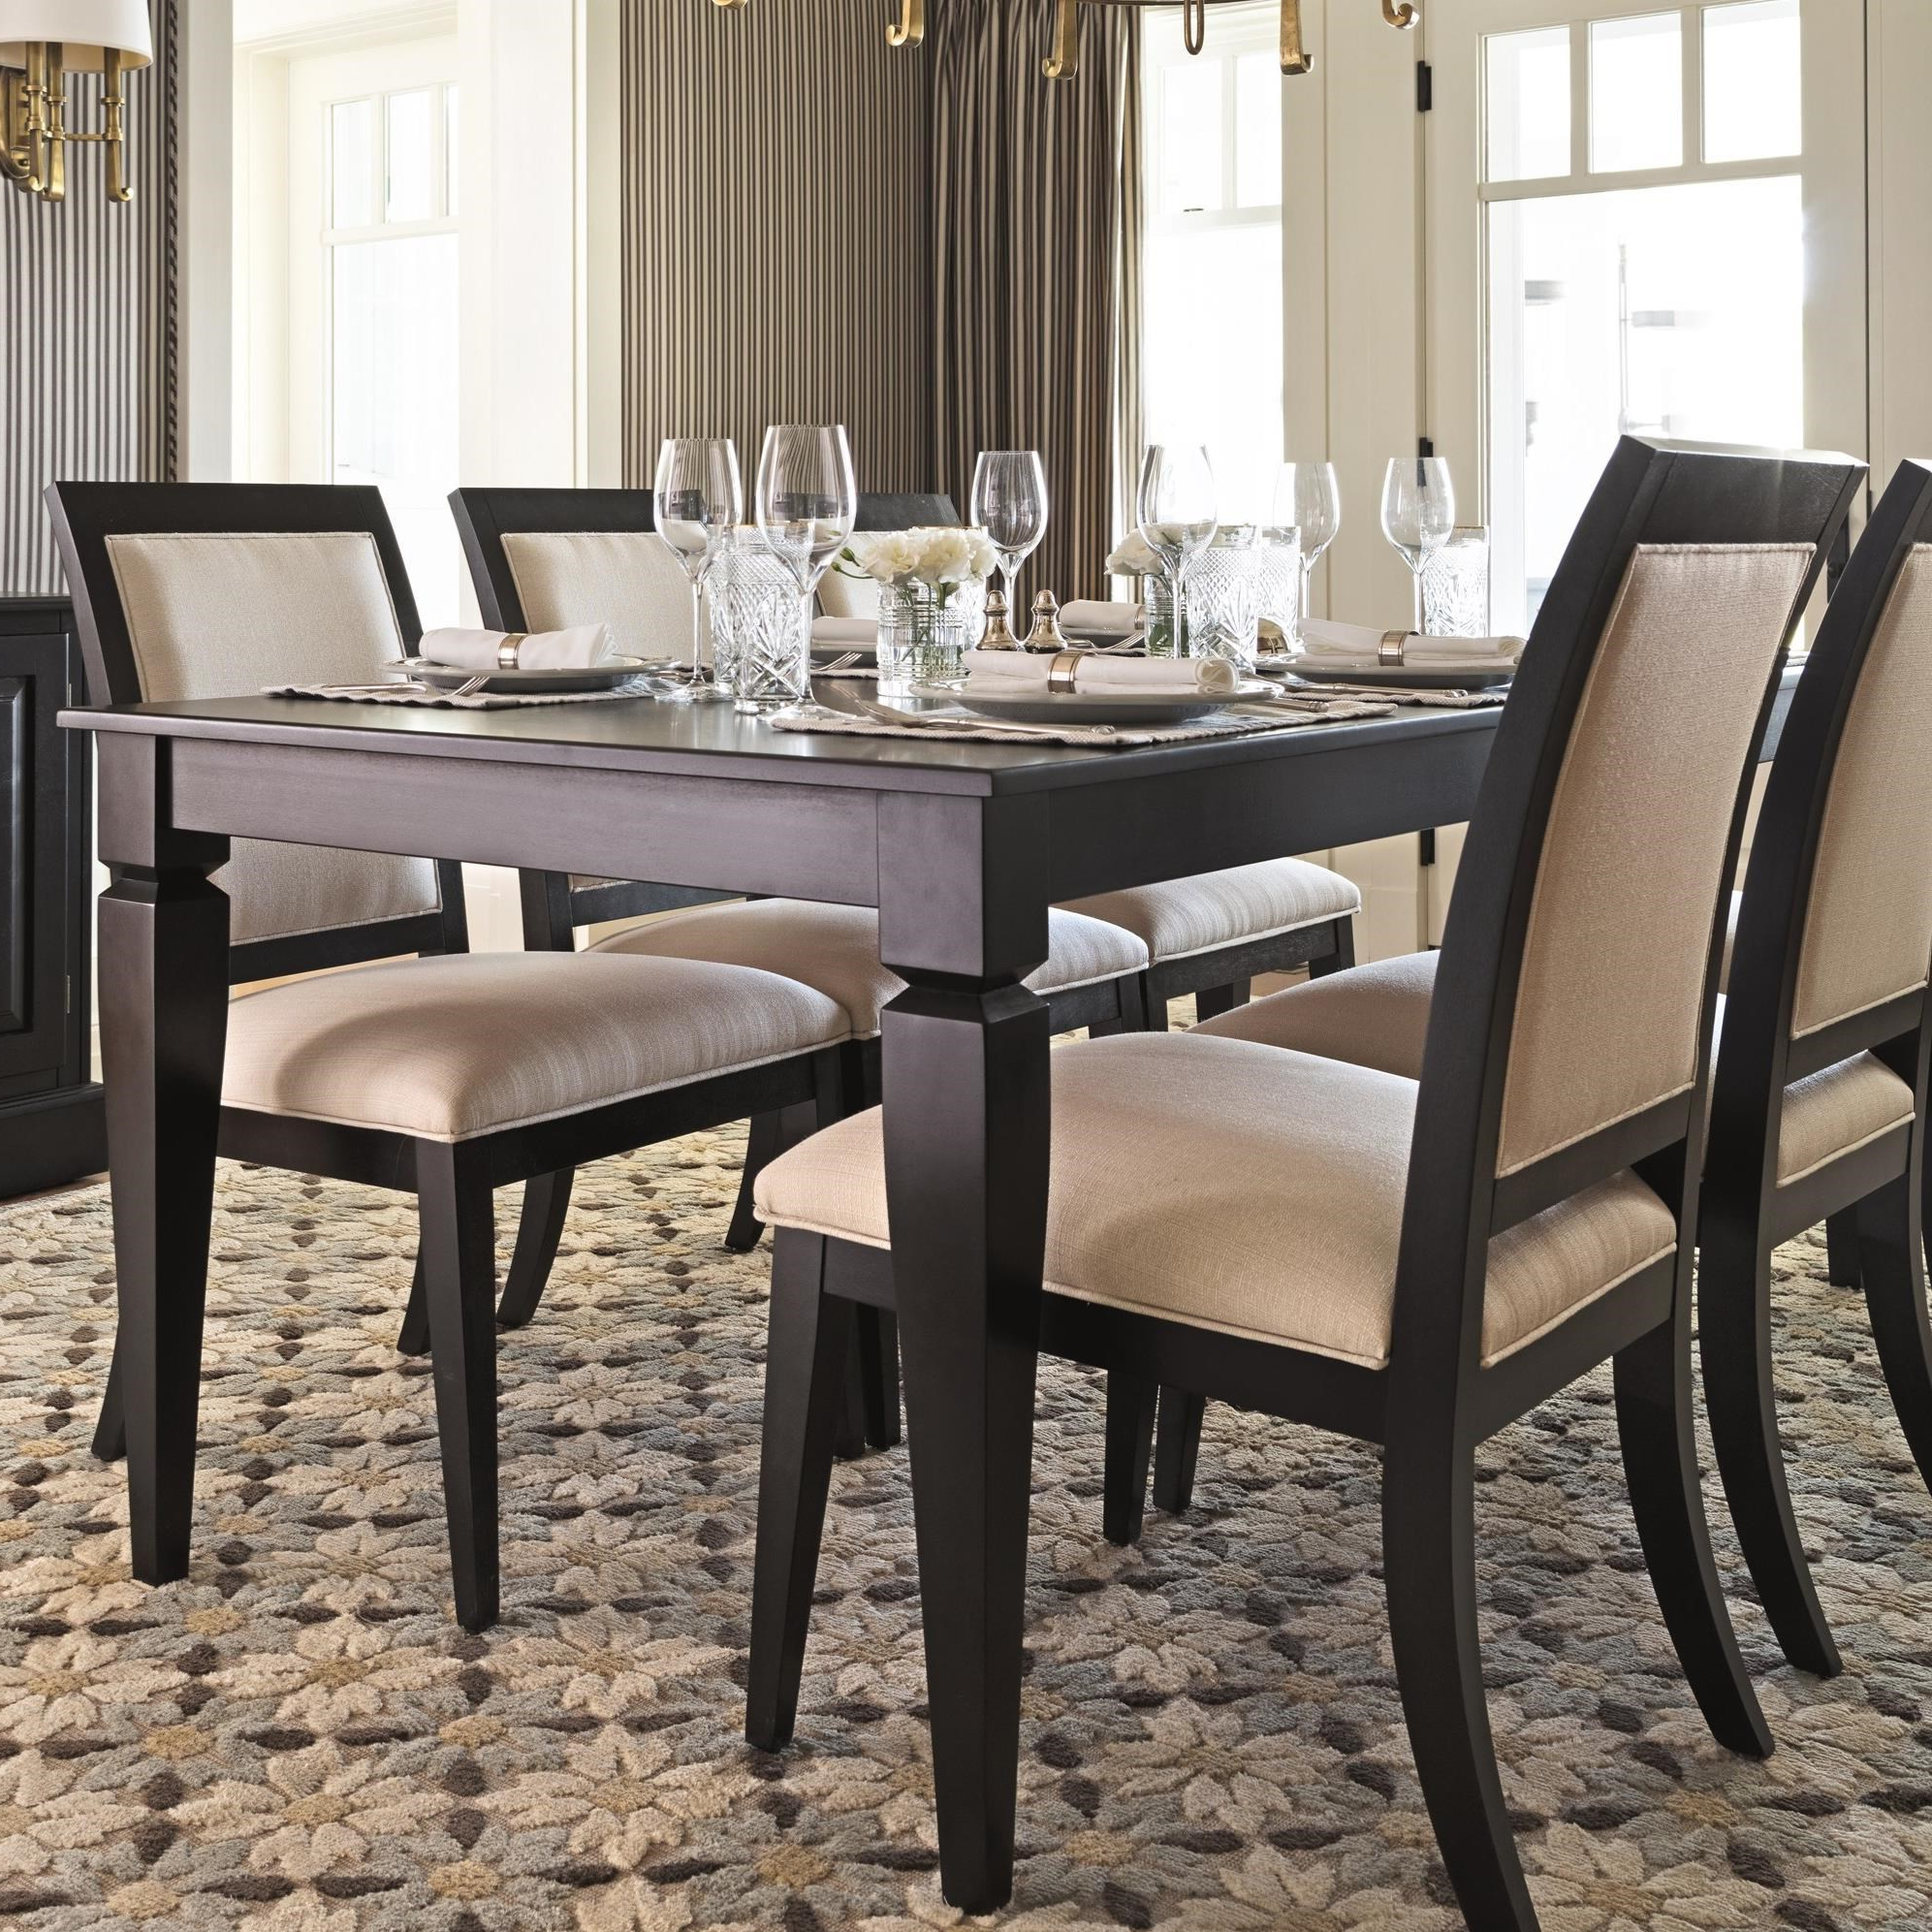 Most Recently Released Canadel Custom Dining Customizable Rectangular Dining Table Regarding Transitional 4 Seating Double Drop Leaf Casual Dining Tables (Gallery 13 of 30)